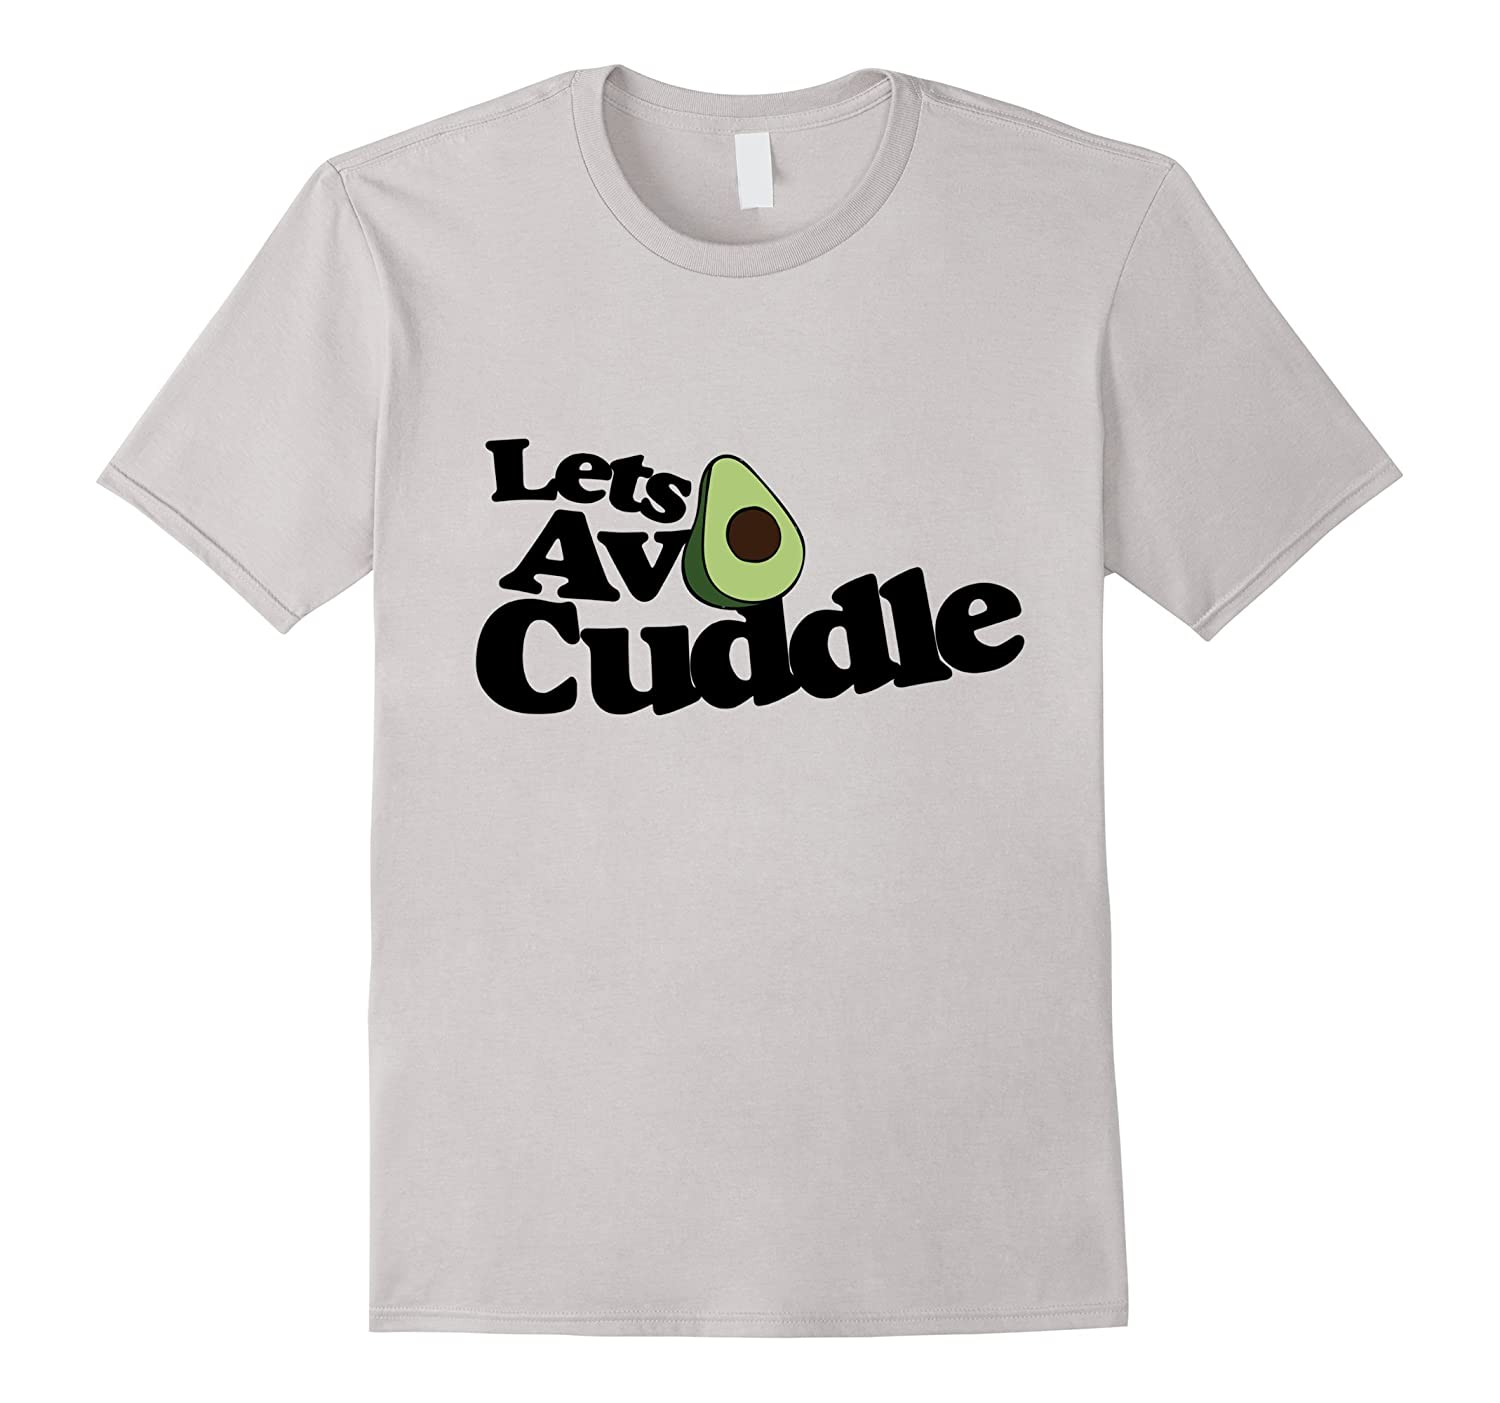 Let's Avo-Cuddle shirt funny Avacado Valentine's Day tees